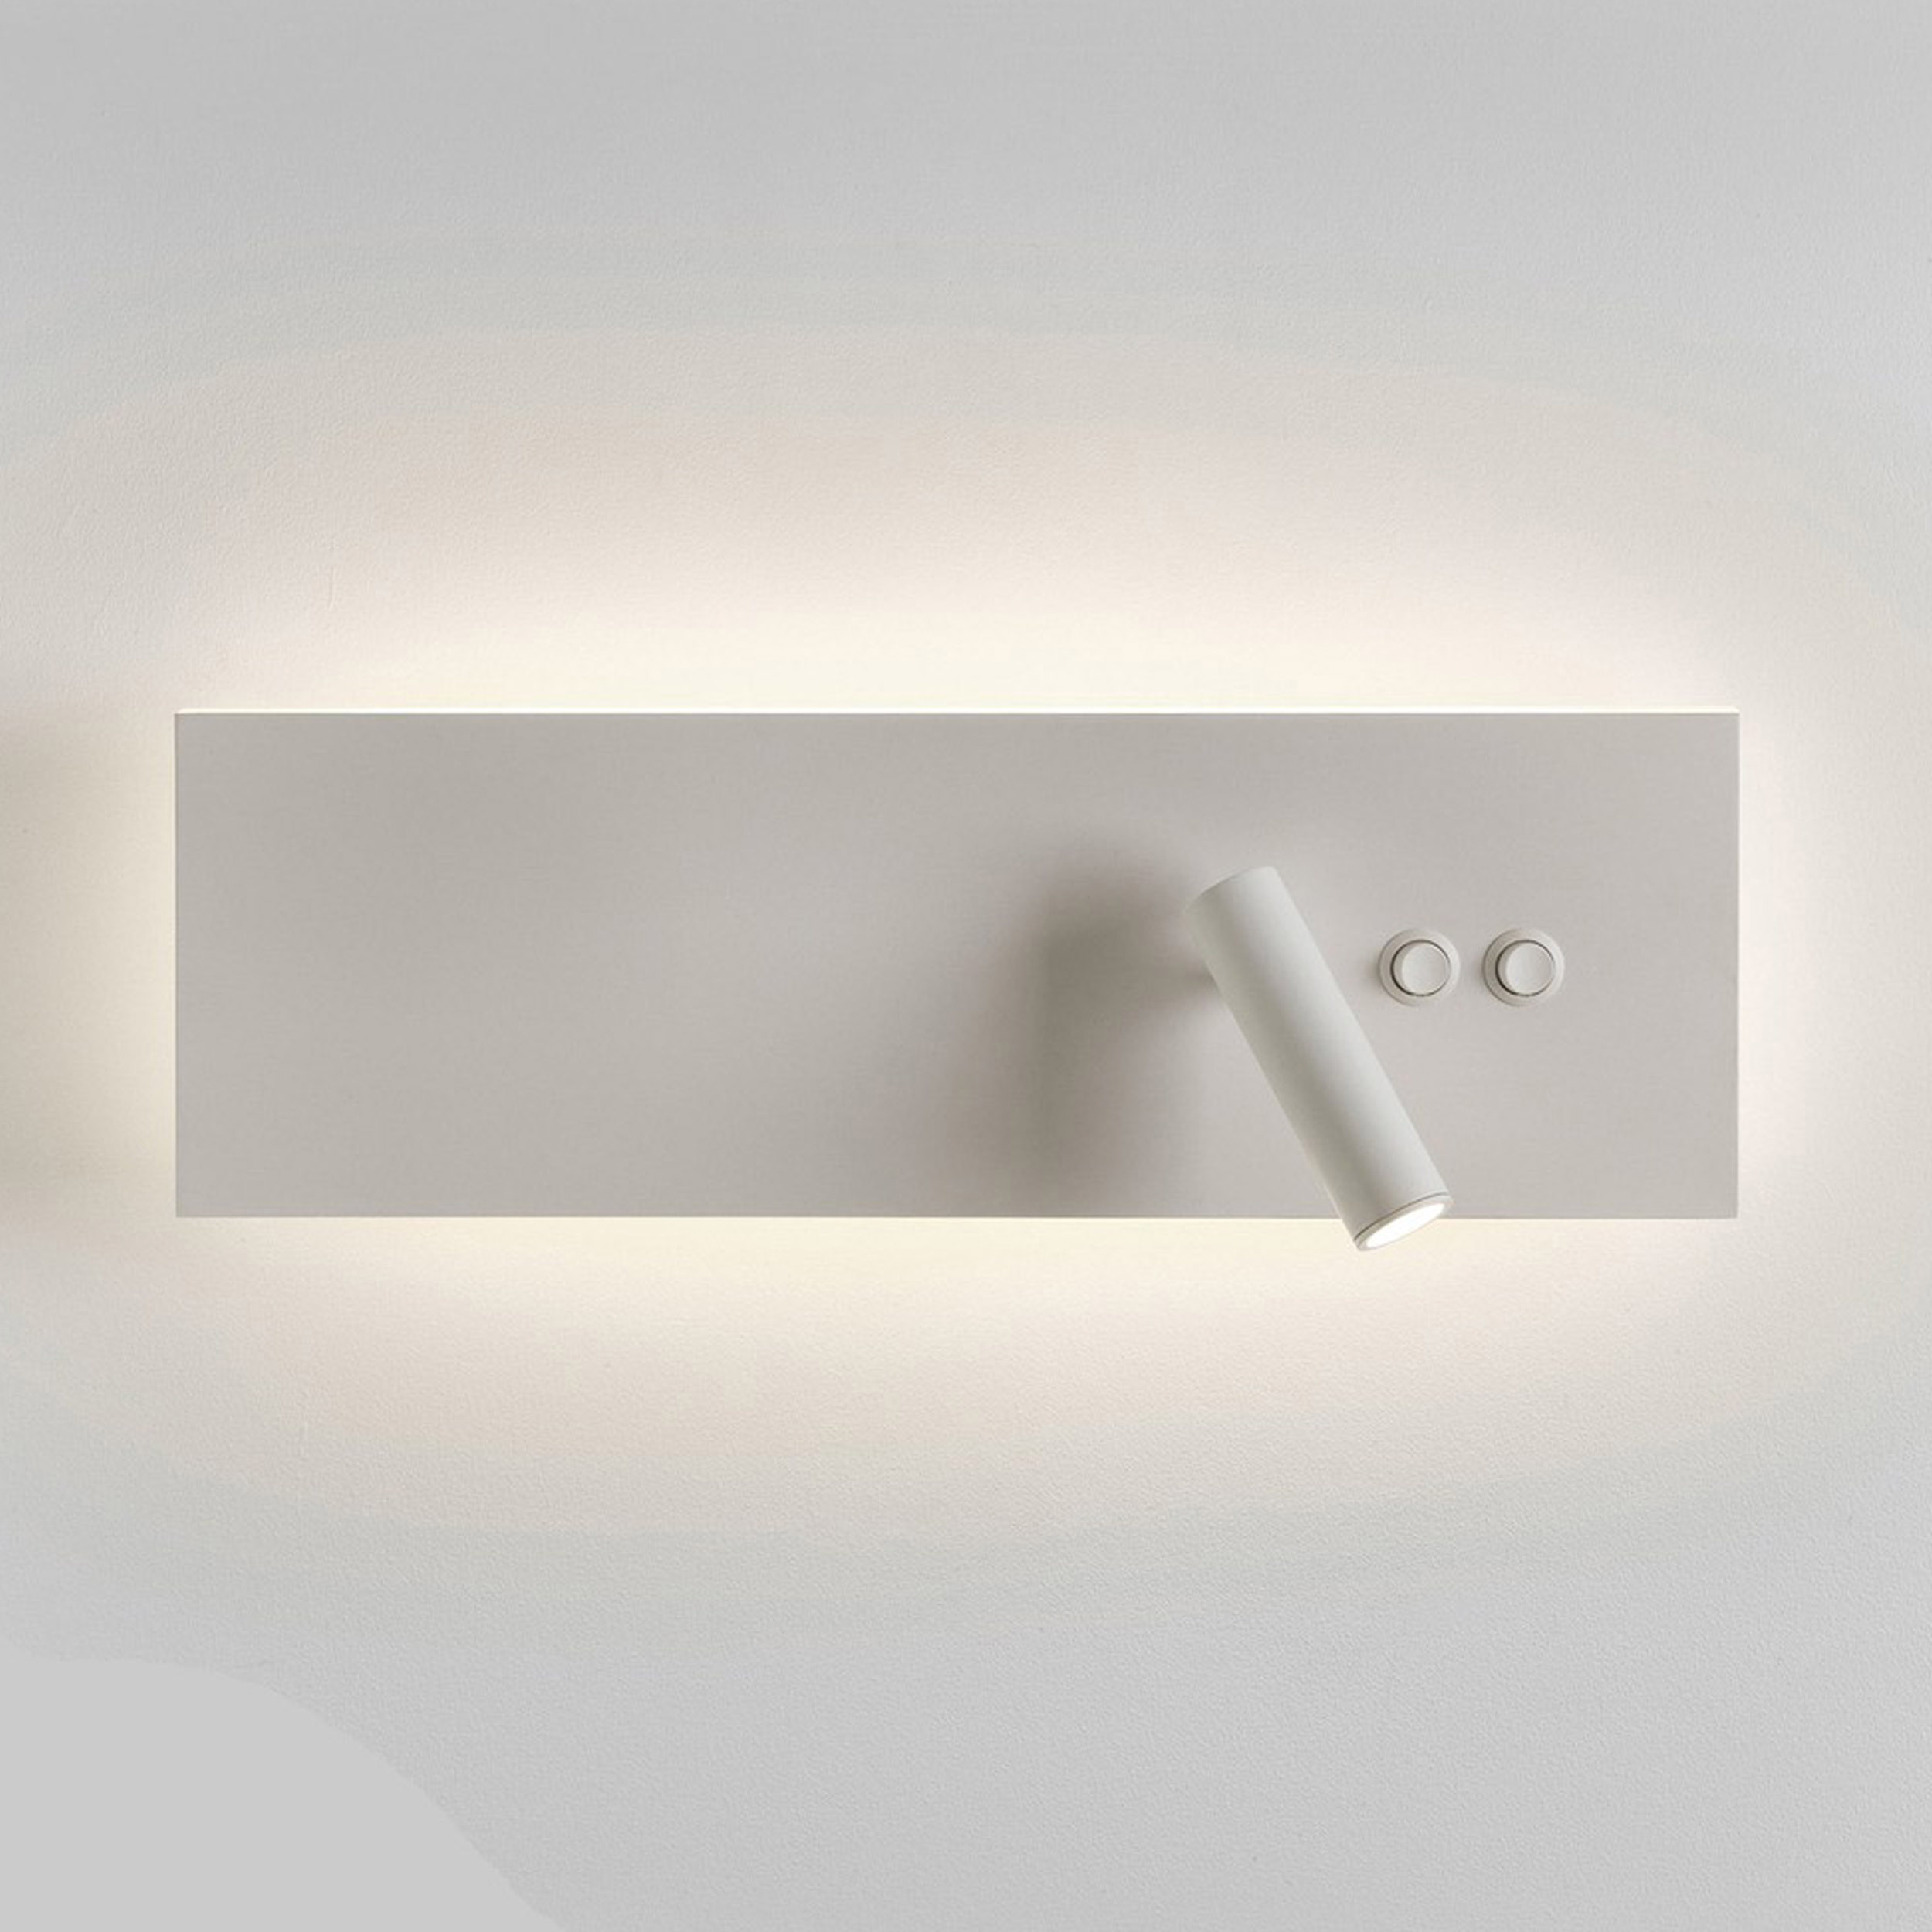 Led Wall Light White: Buy Online Now At All Square